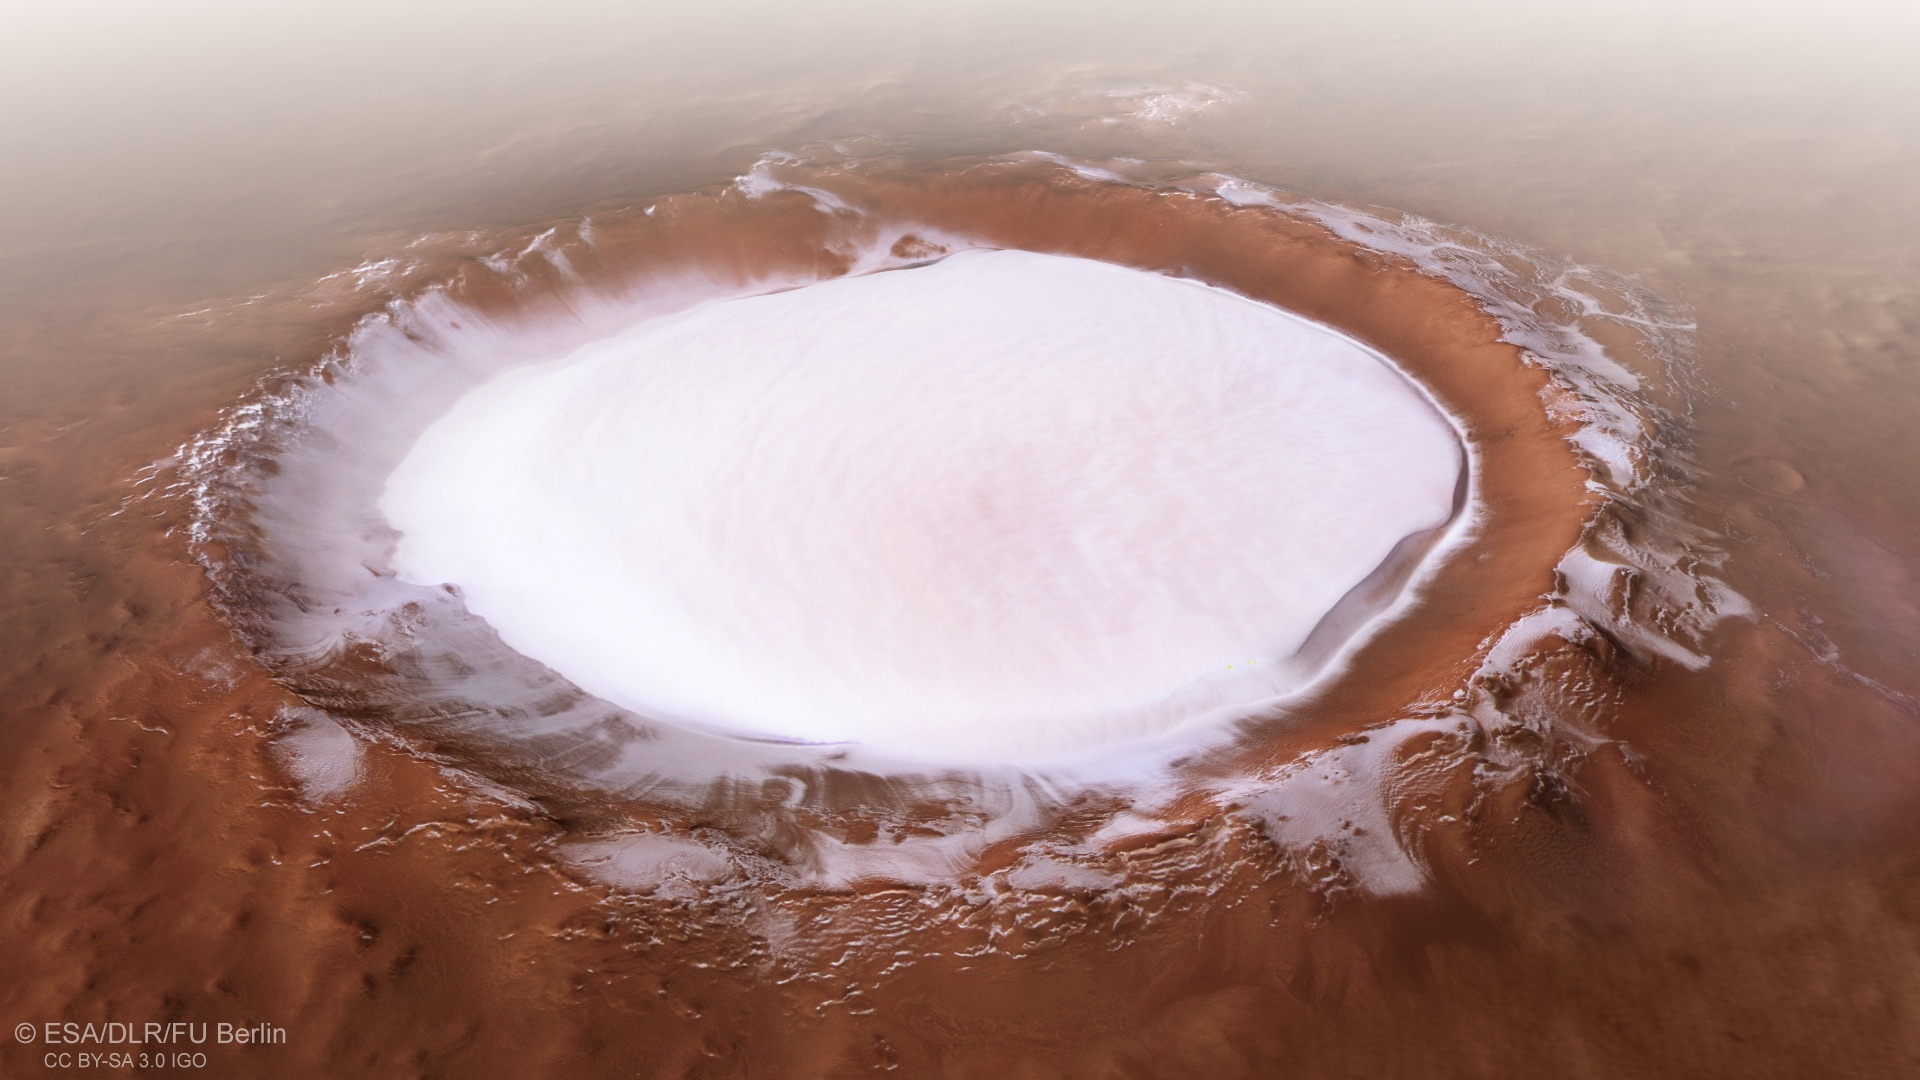 http://www.esa.int/var/esa/storage/images/esa_multimedia/images/2018/12/perspective_view_of_korolev_crater/18938178-1-eng-GB/Perspective_view_of_Korolev_crater.jpg